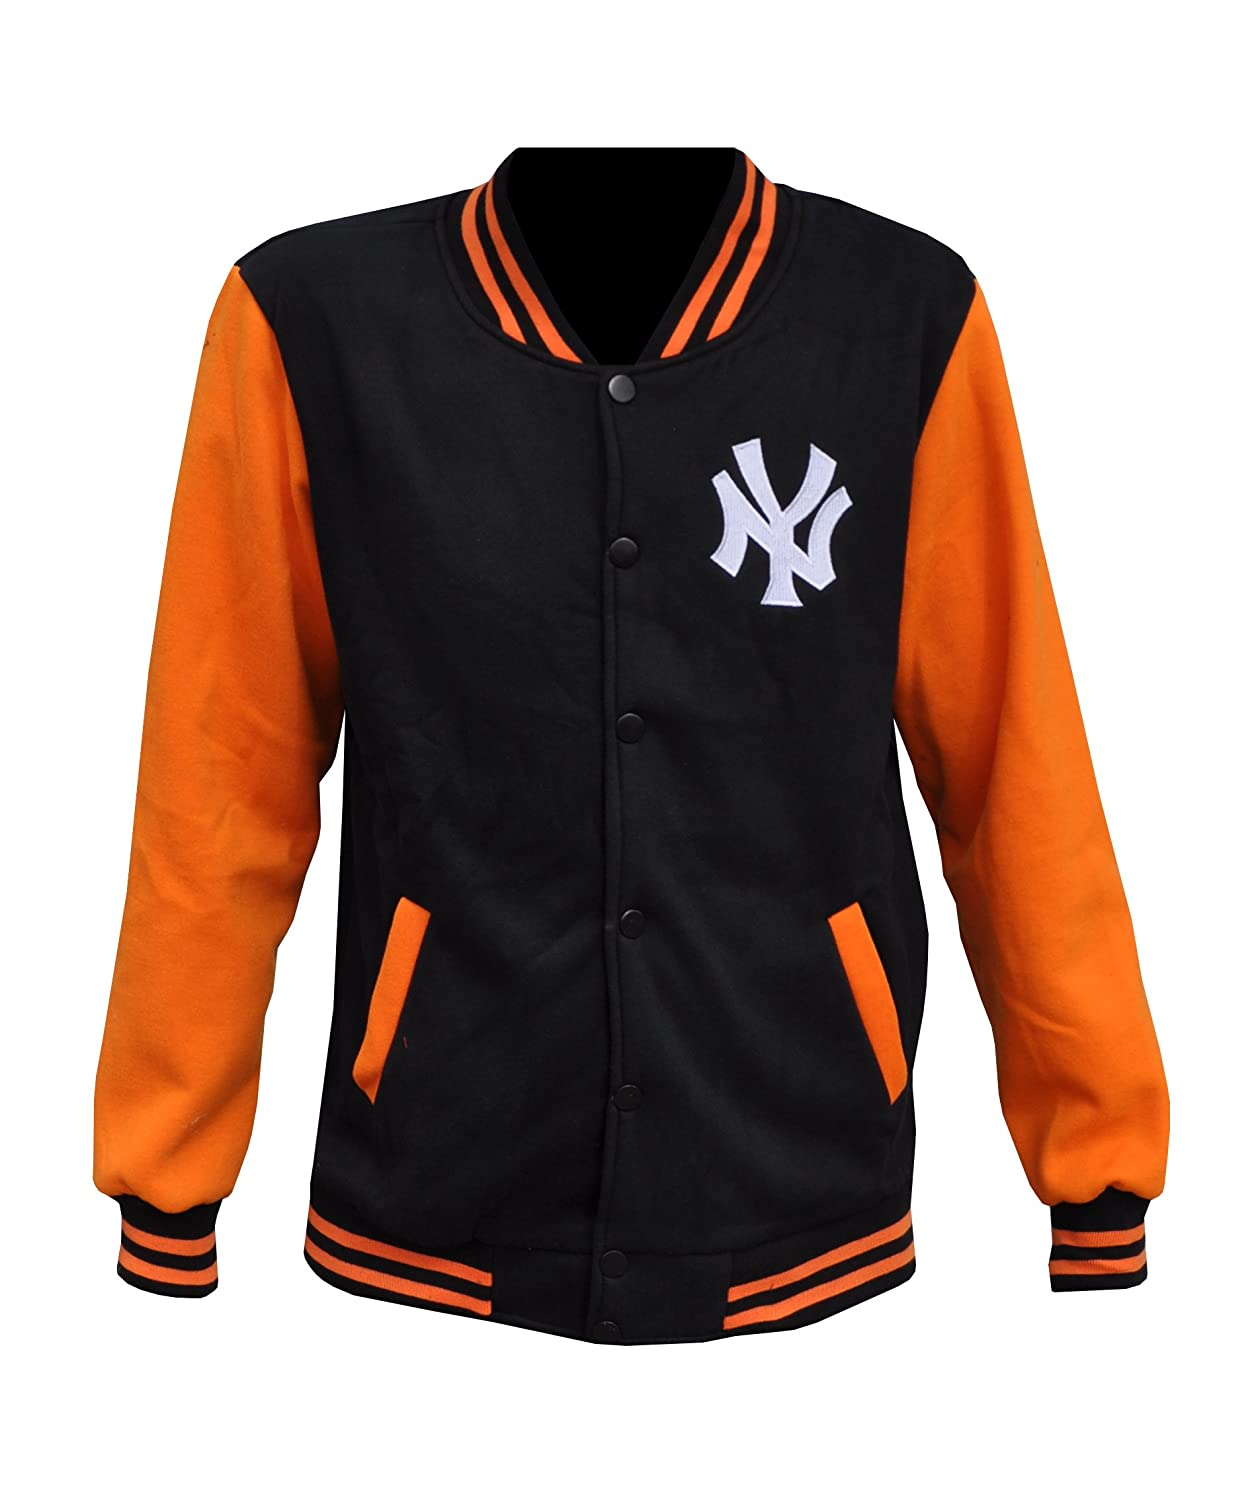 Baseball Jackets New York Yankees - Chaqueta de Estilo ...